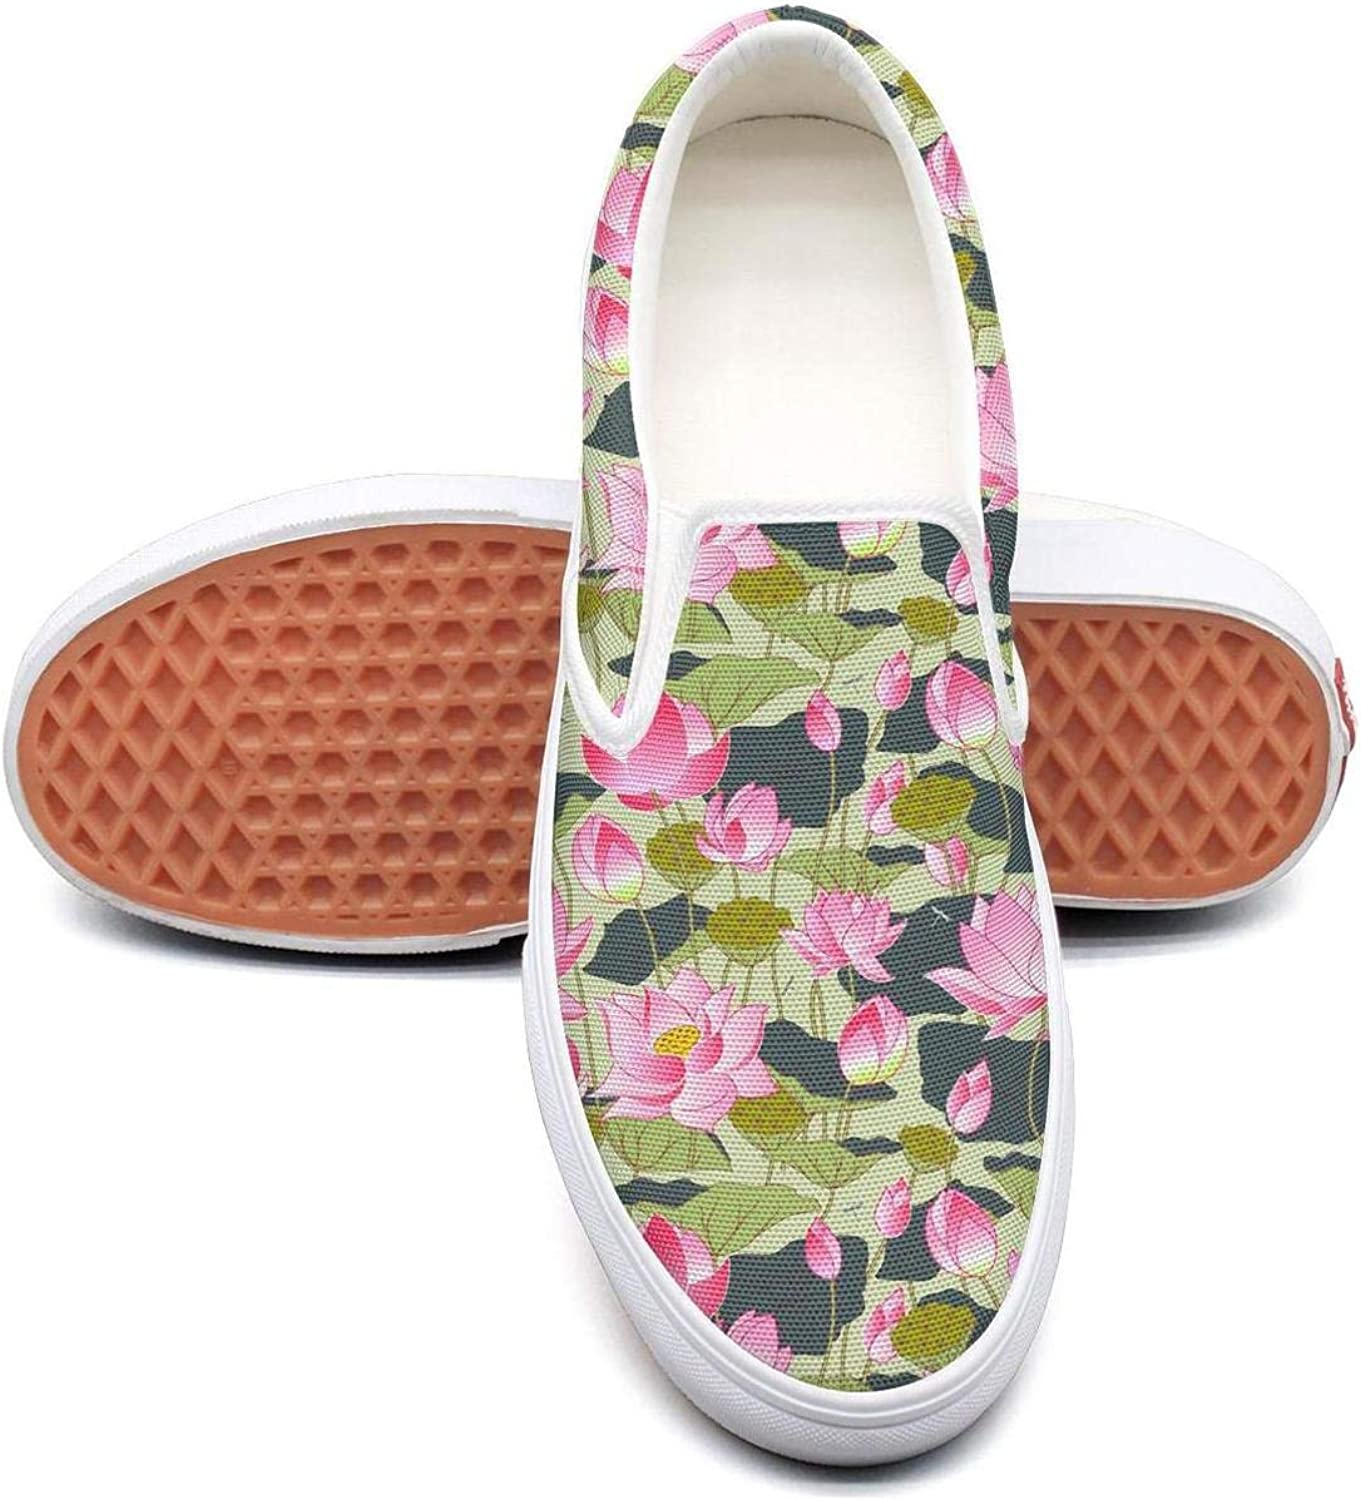 Refyds-es Blooming Lotus Flowers Womens Fashion Slip on Low Top Lightweight Canvas Sneakers